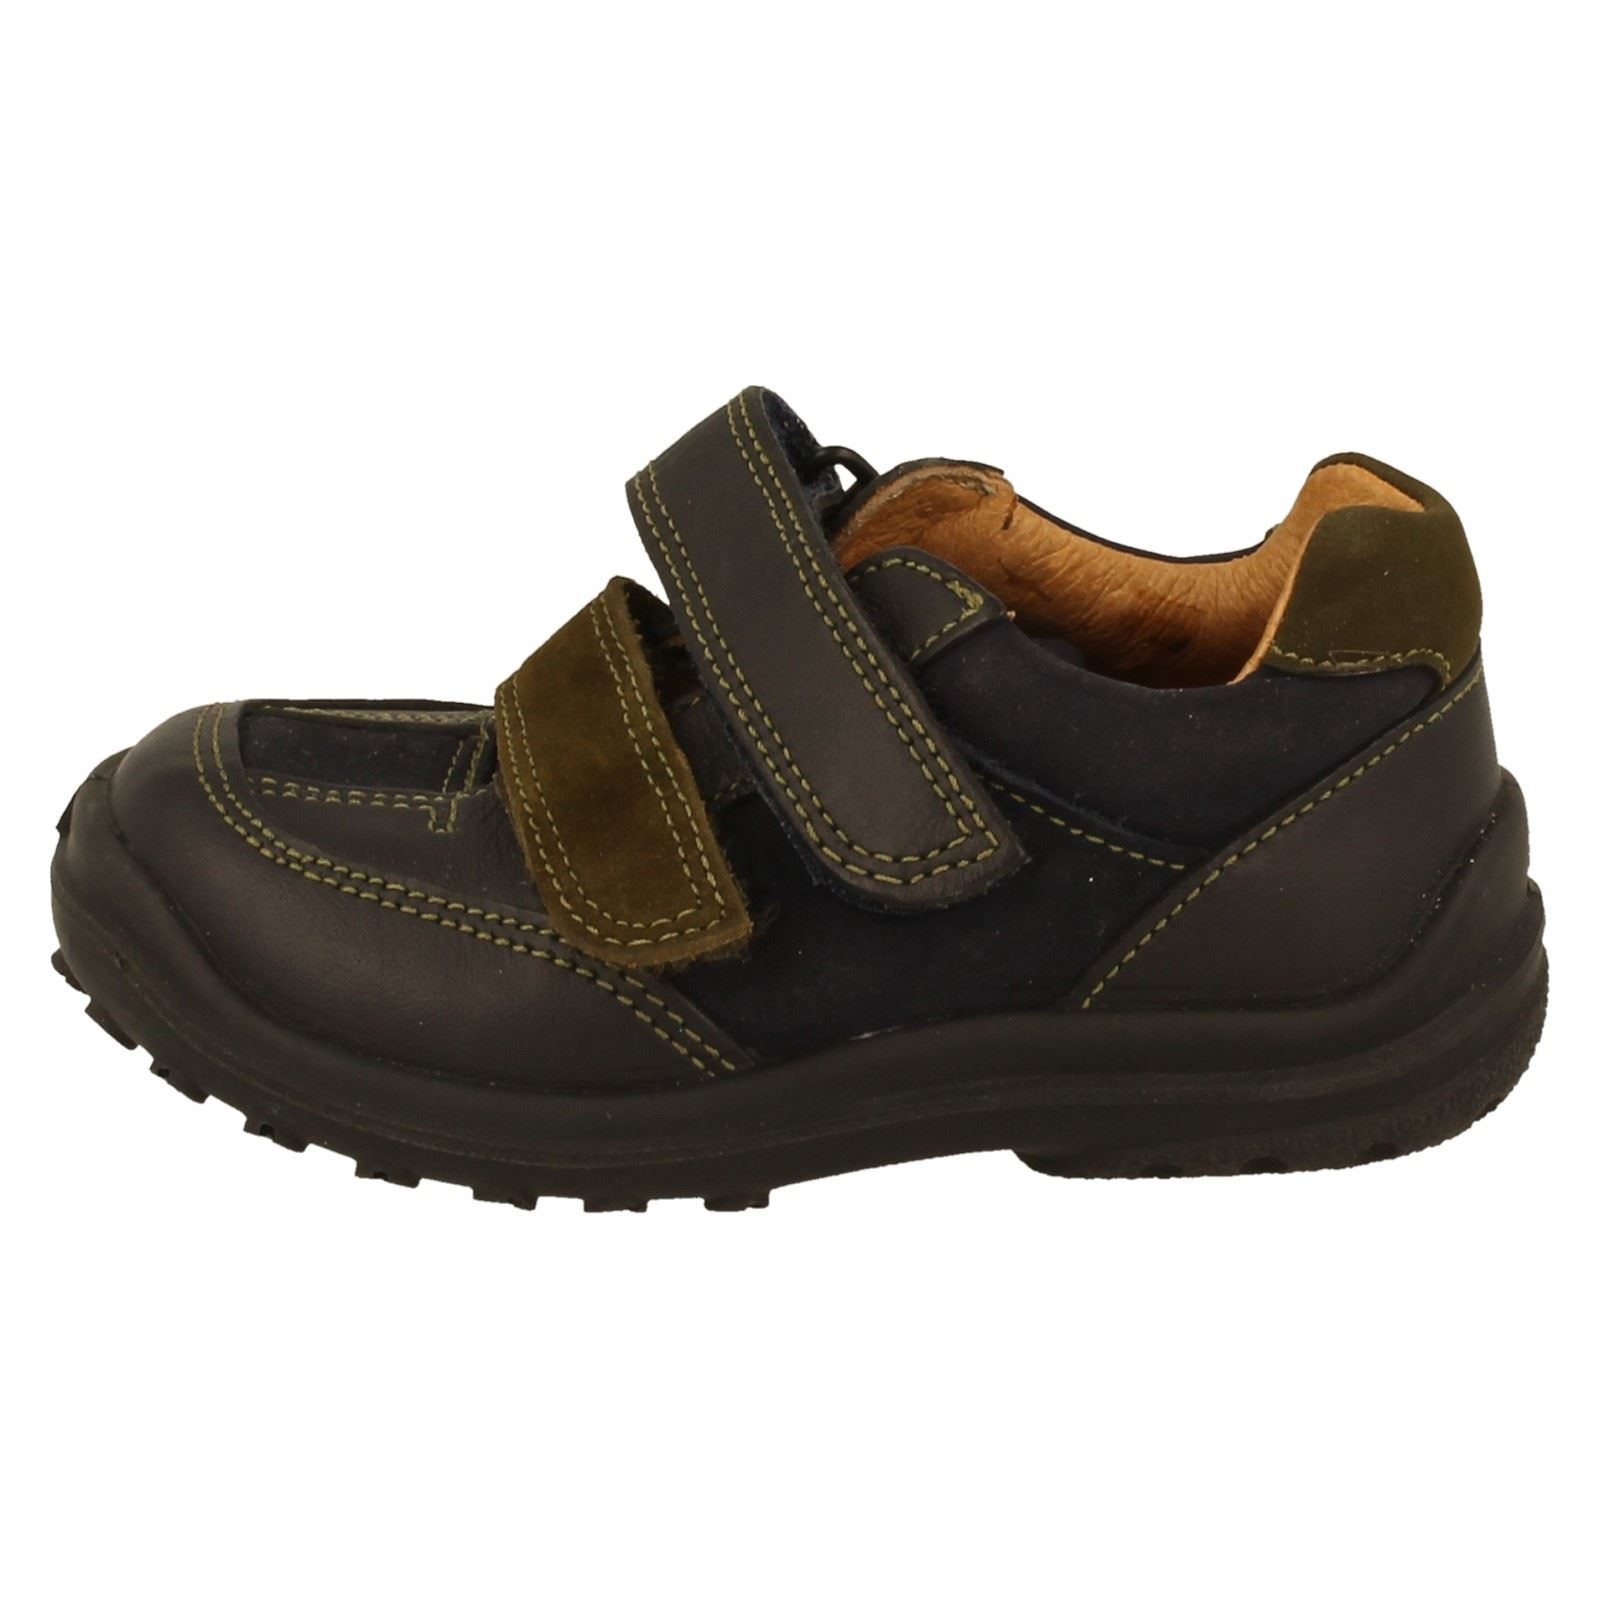 Boys Clarks Casual First Shoes The Style - Flame Thrower